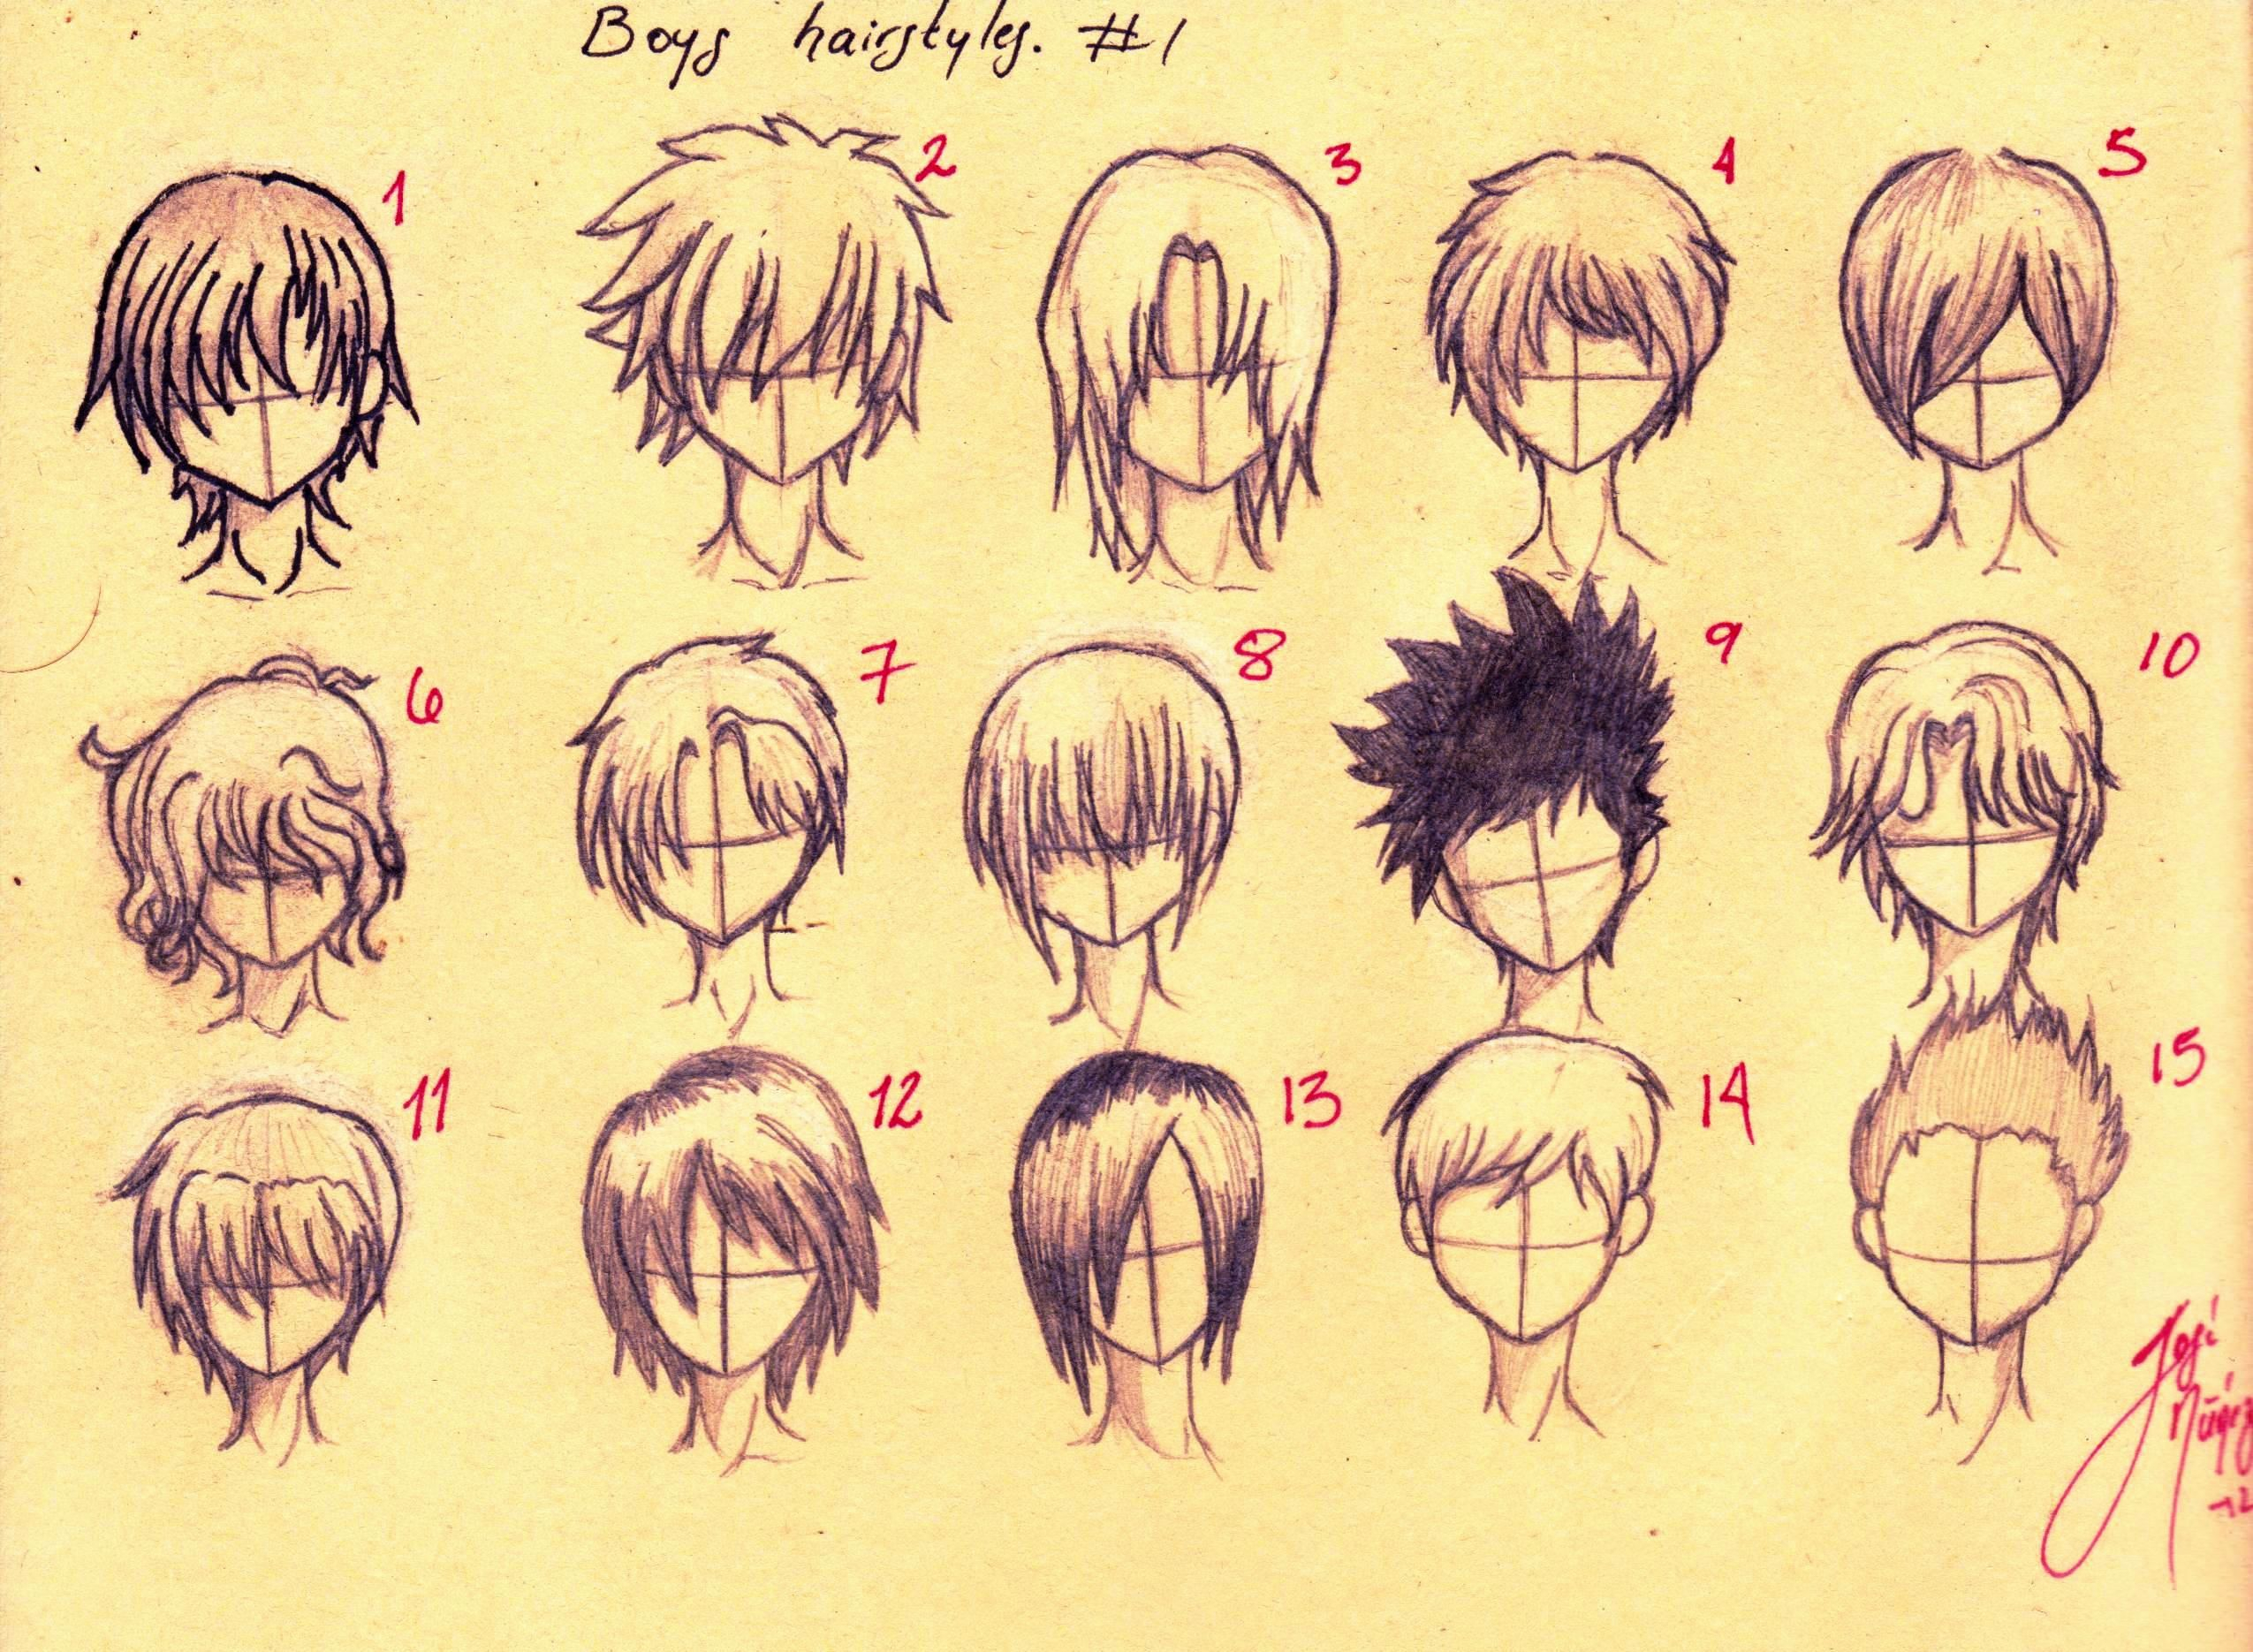 2550x1870 Anime Guy Hairstyles Drawing 31 Anime Hair Ideas, Anime Girl